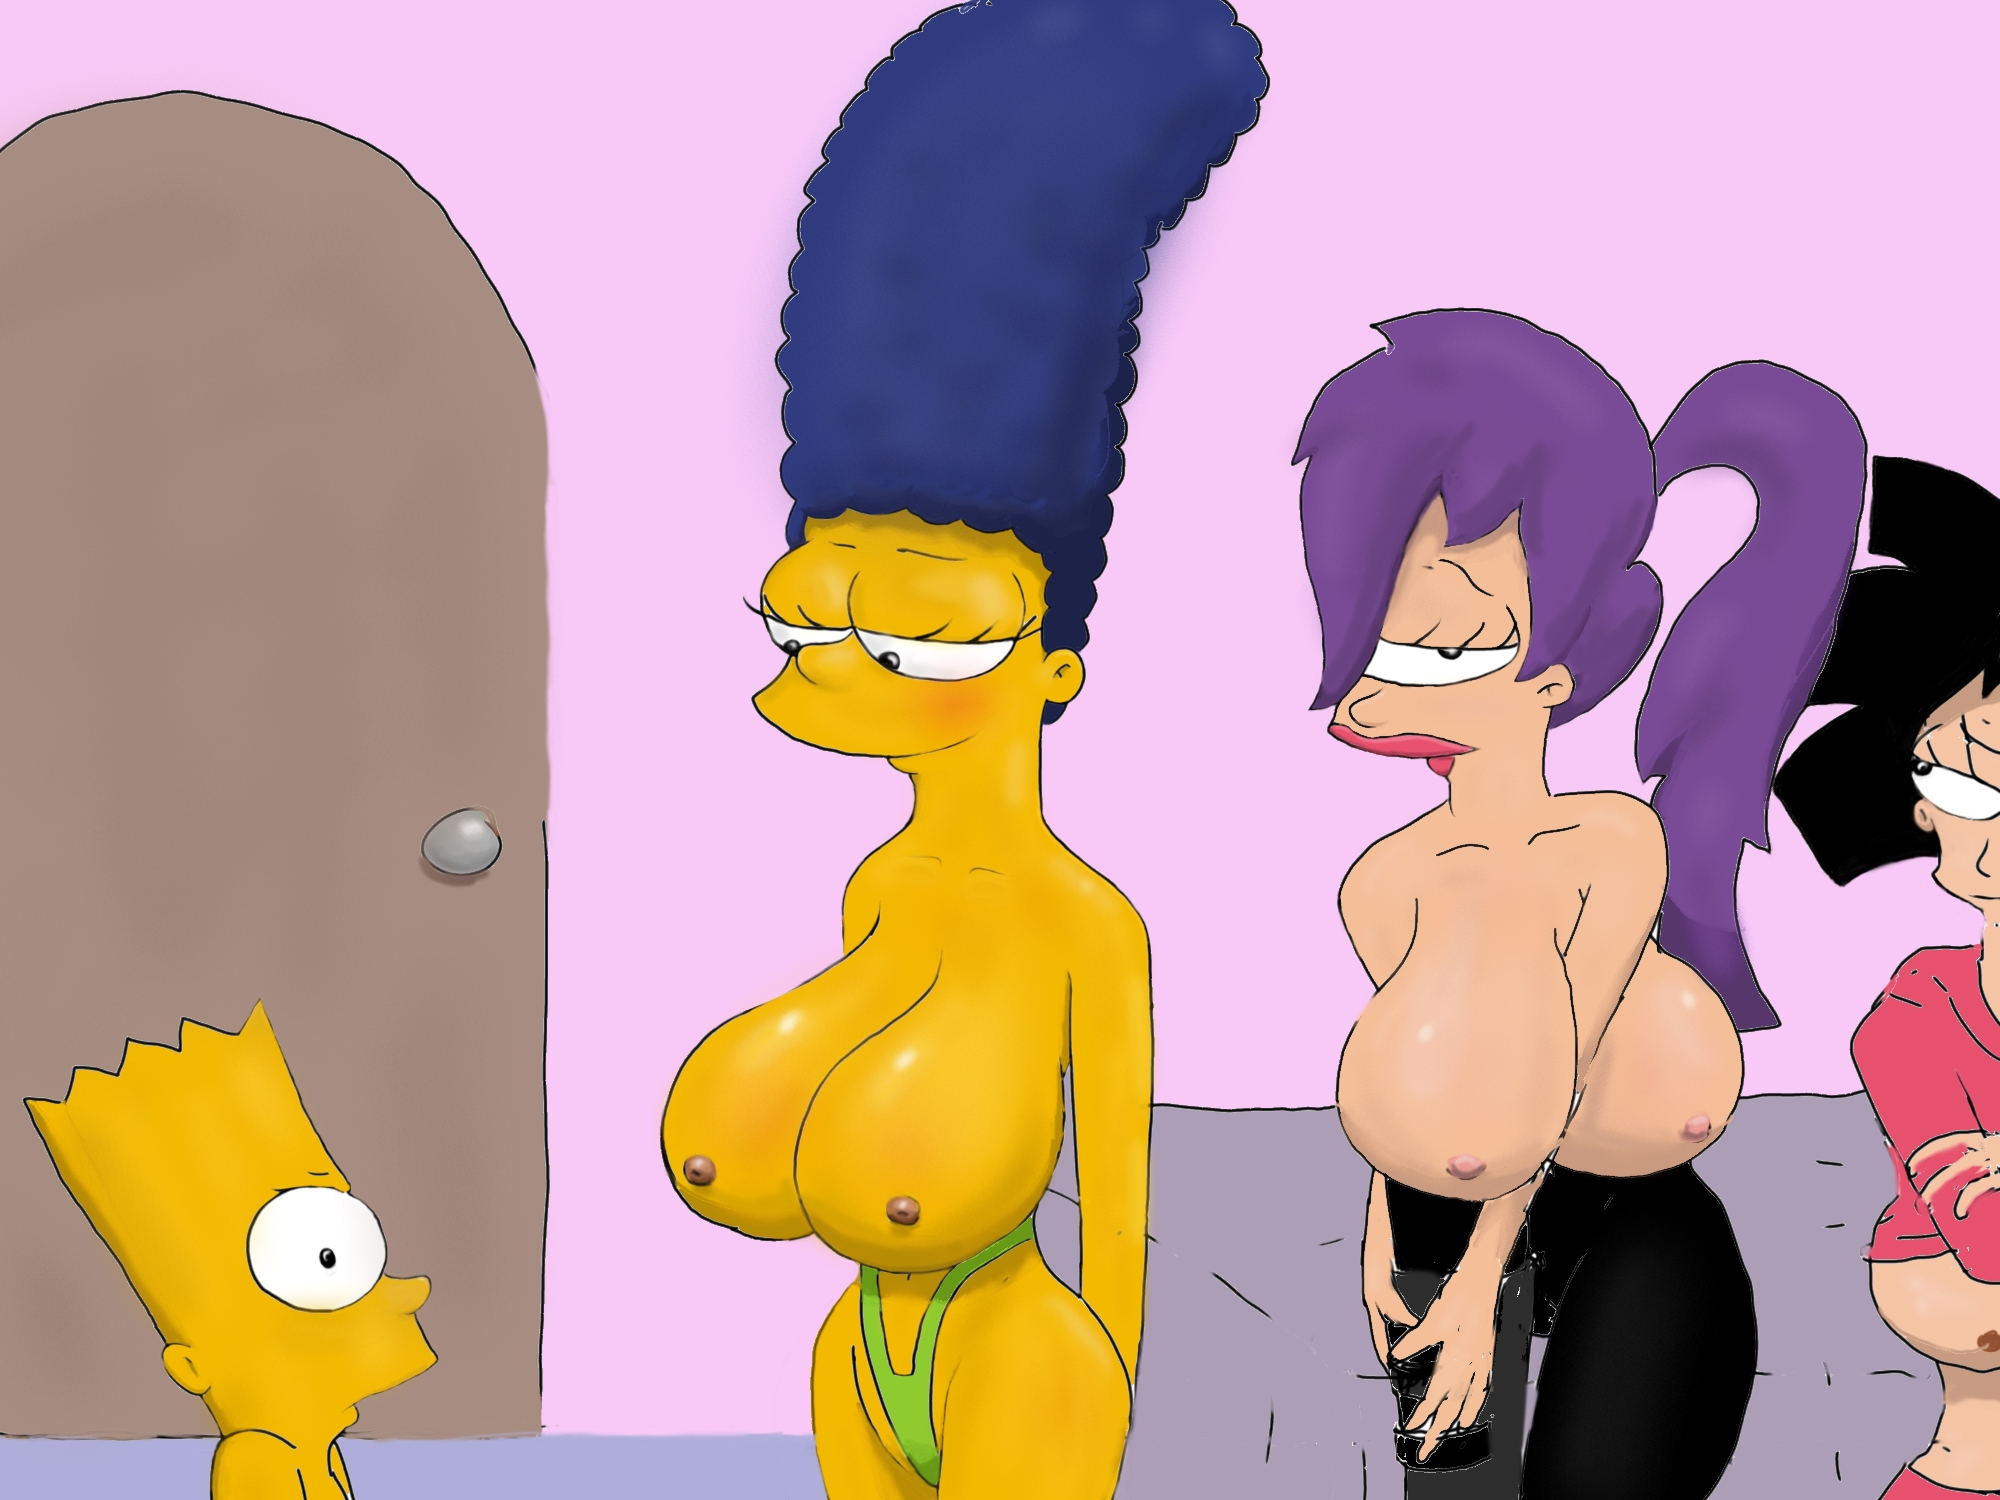 Have Leela amy futurama naked very pity